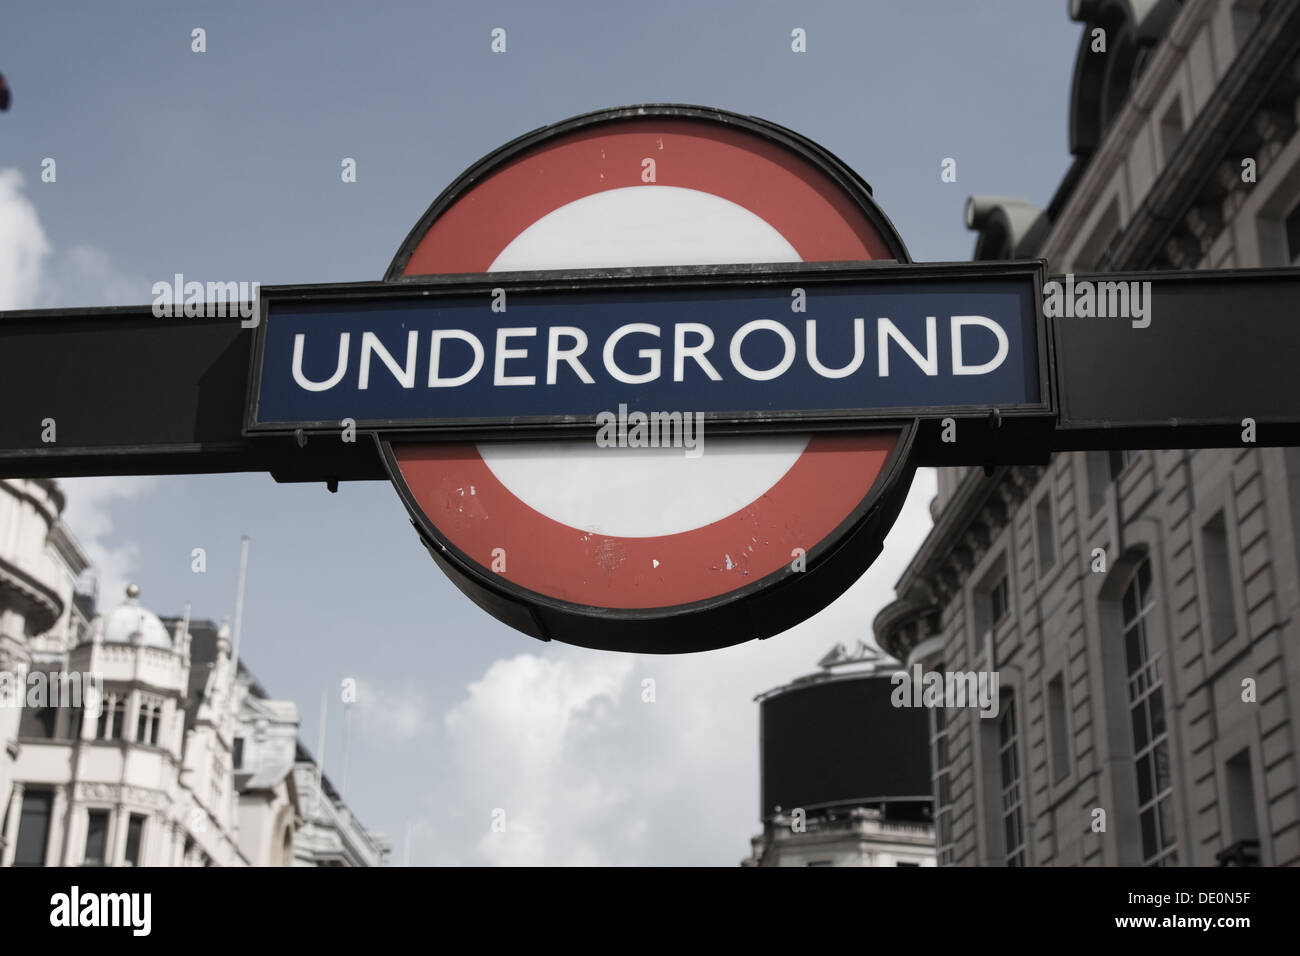 Underground station in picadilly - Stock Image